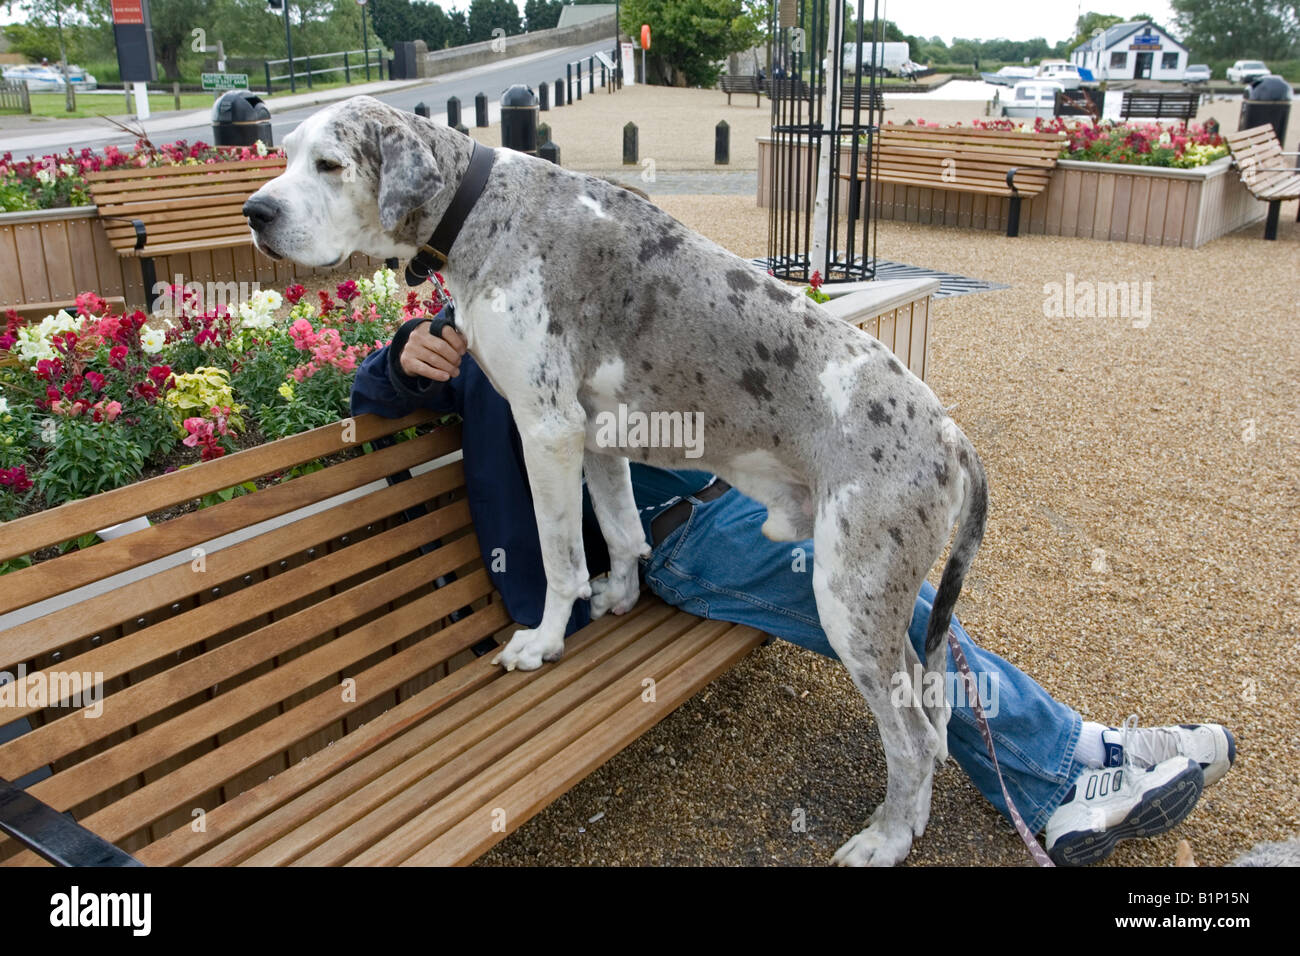 Large Great dane dog standing on seat with owner Norfolk Broads UK - Stock Image